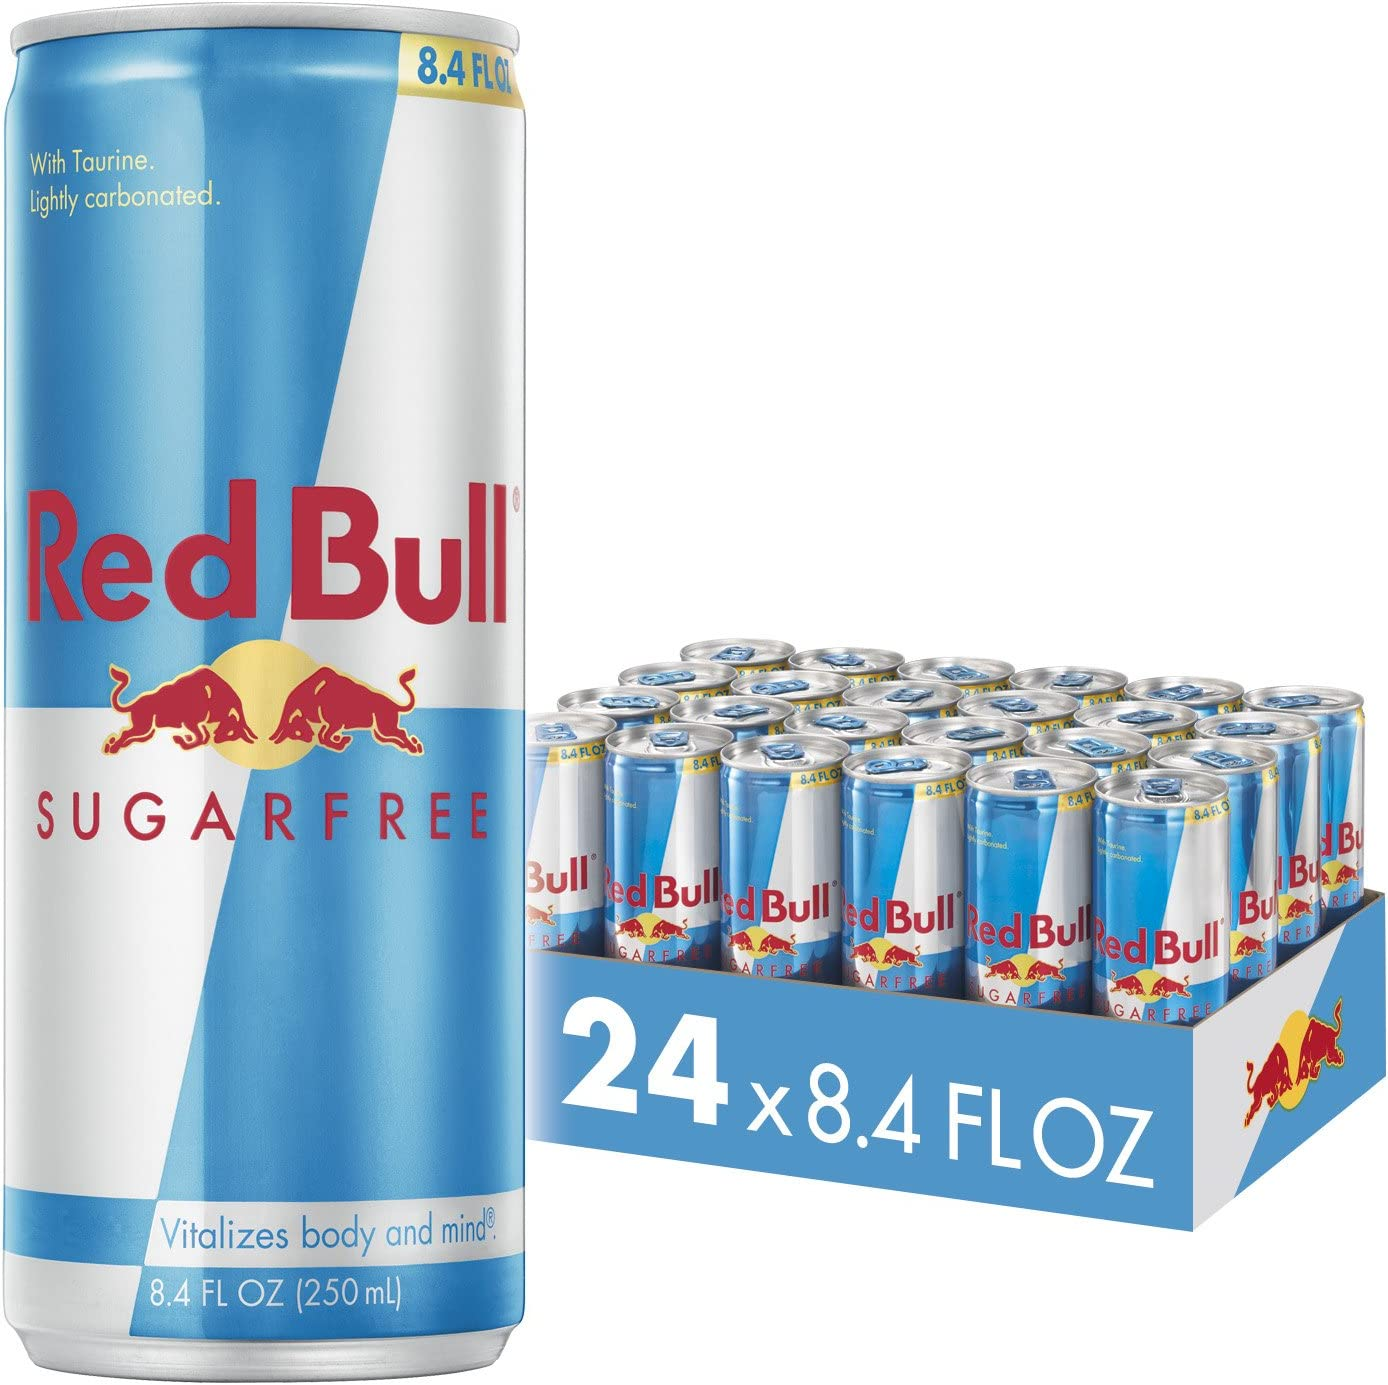 Can sugar free redbull help you lose weight